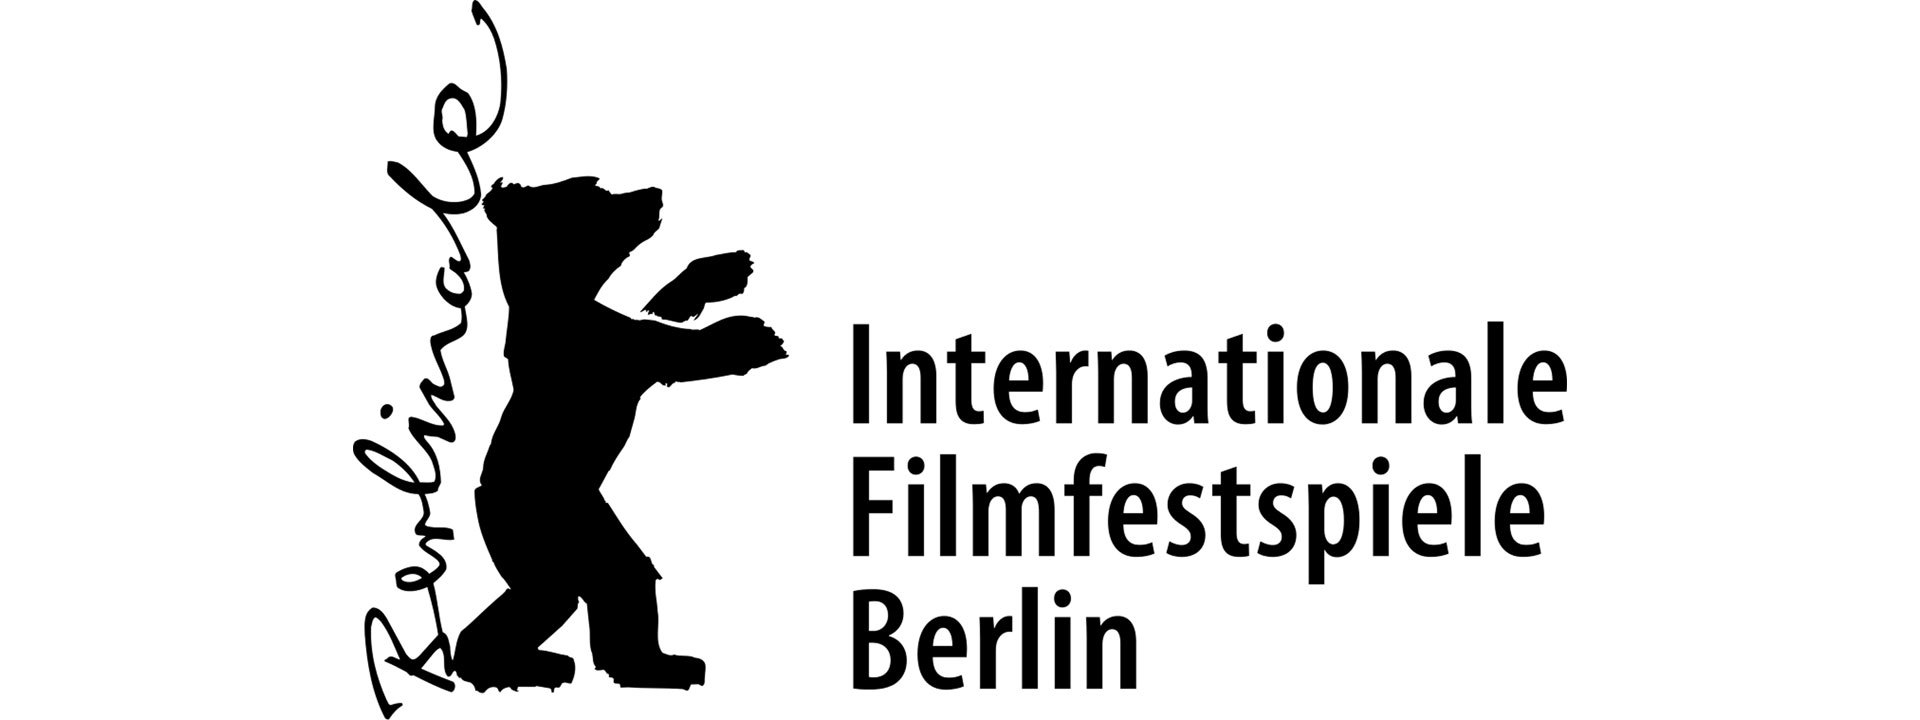 FESTIVAL DEL CINEMA DI BERLINO 2020